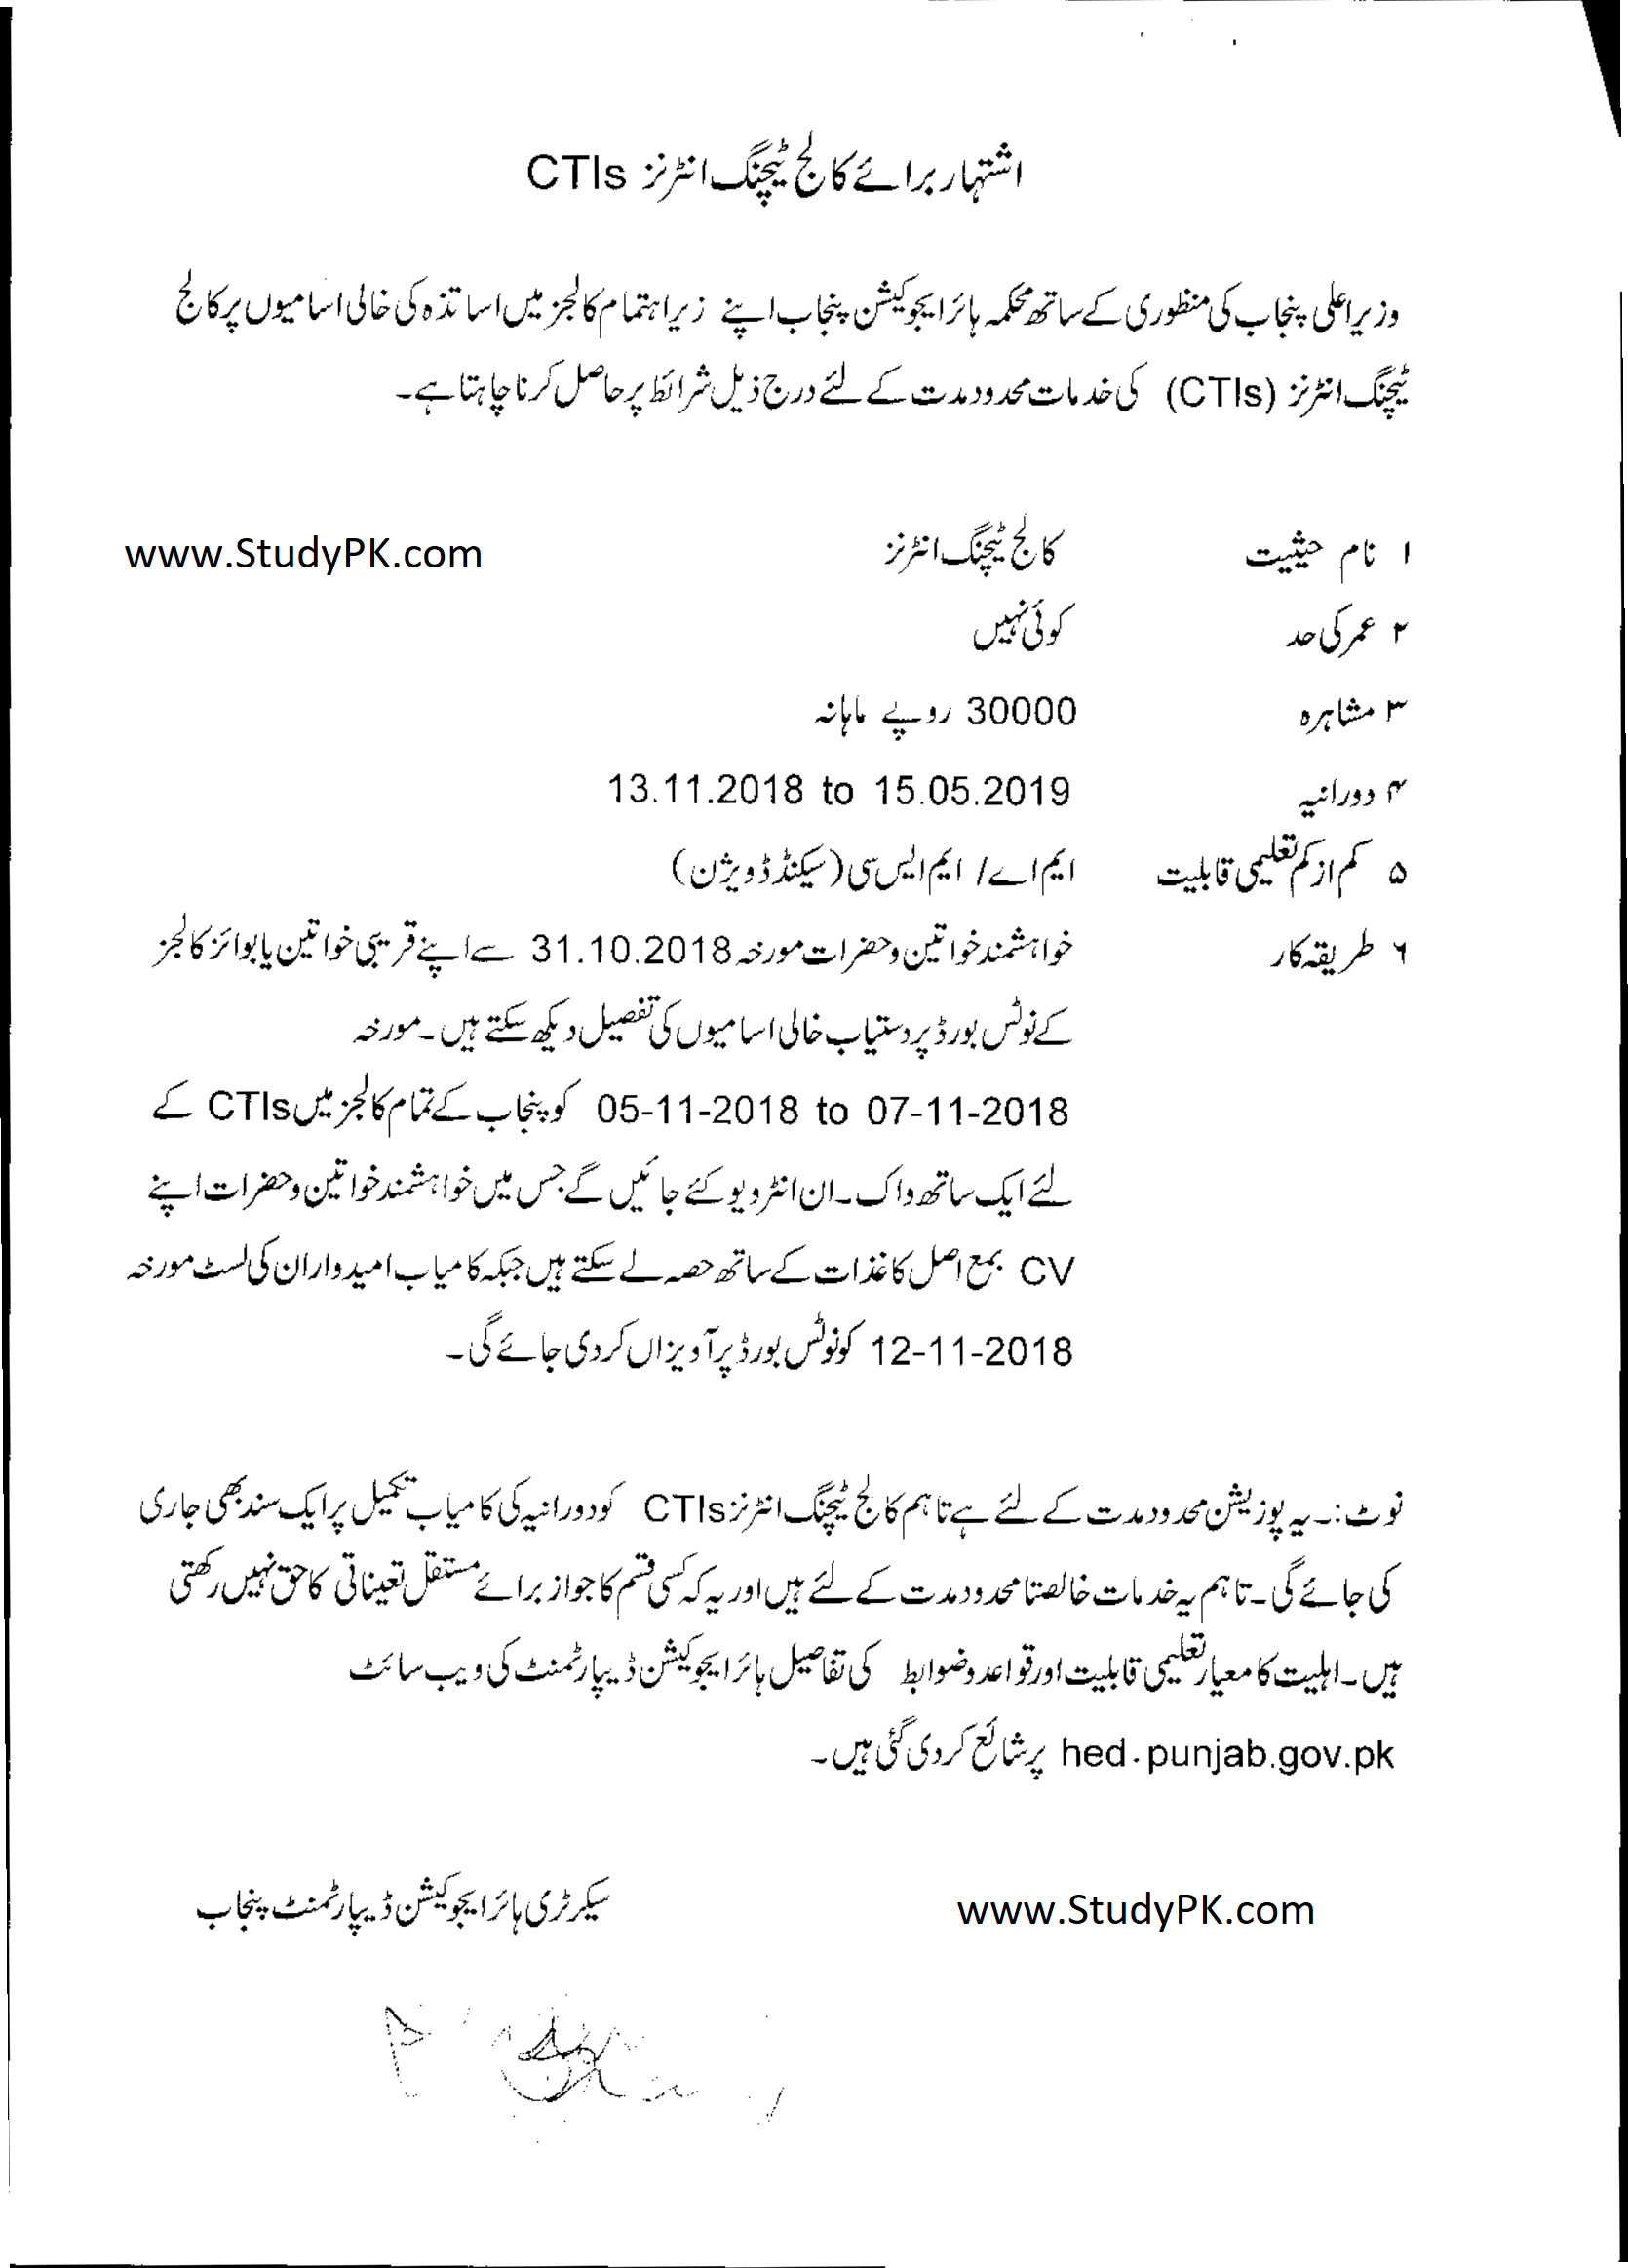 CTI Jobs in Higher Education Department 2018